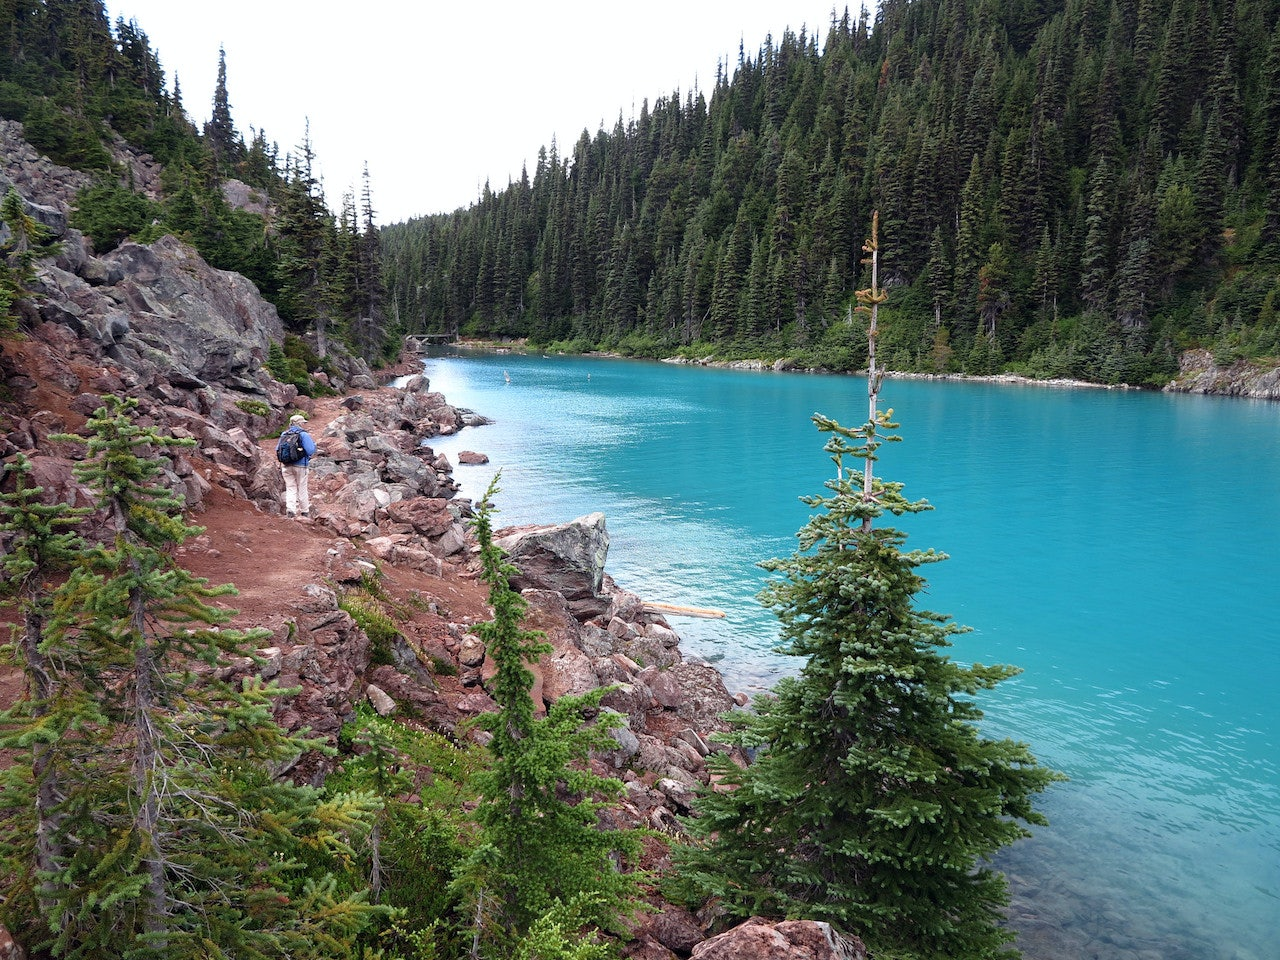 the hike trail along the Garibaldi Lake